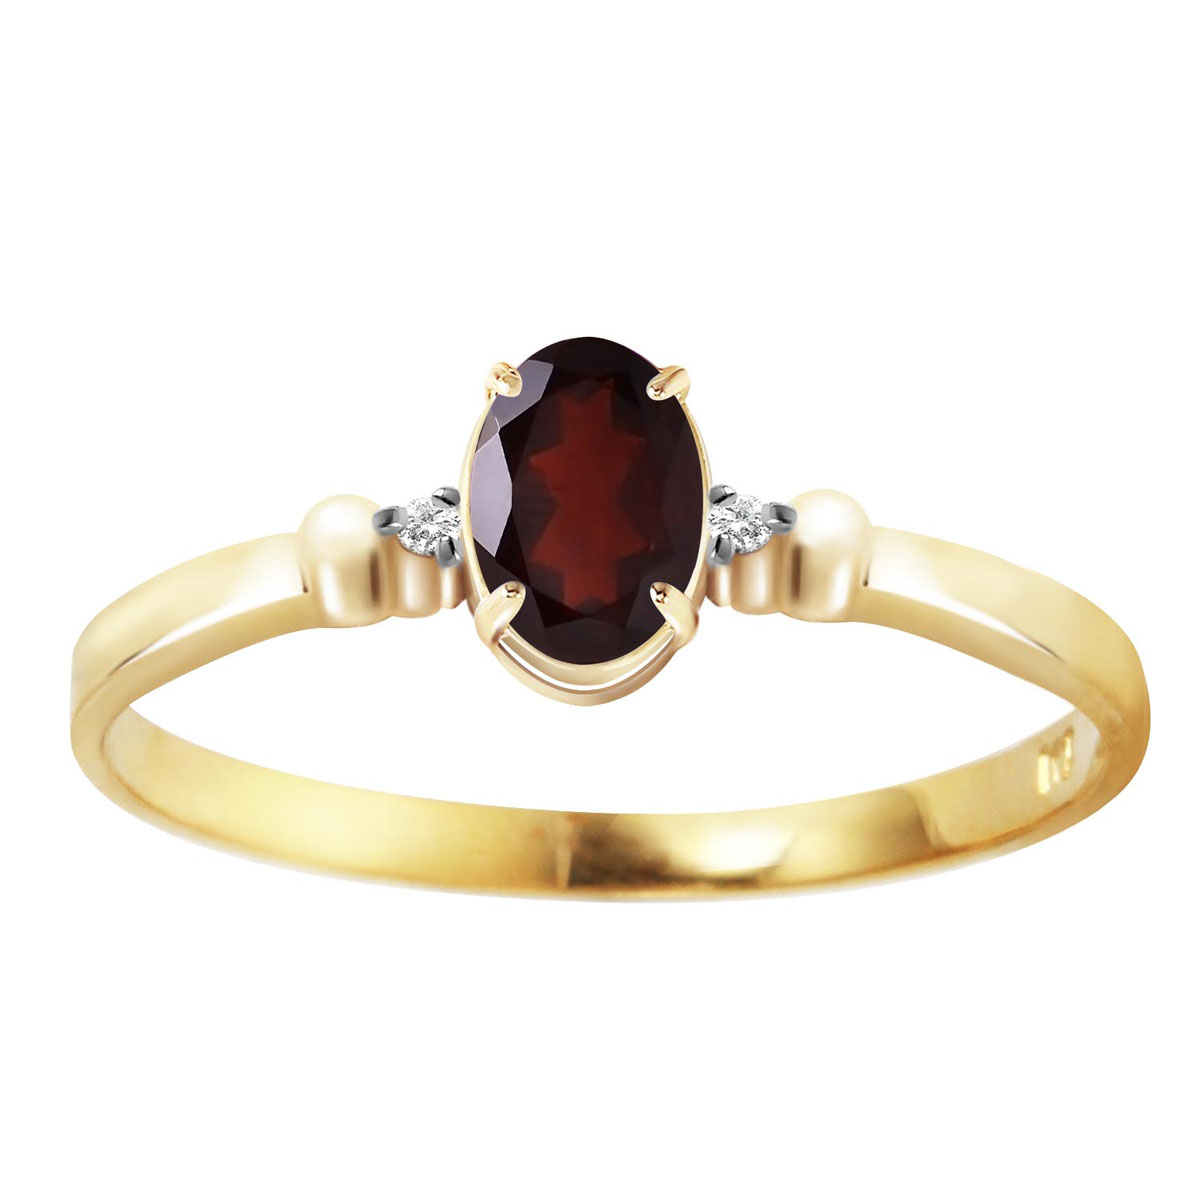 Garnet & Diamond Allure Ring in 9ct Gold